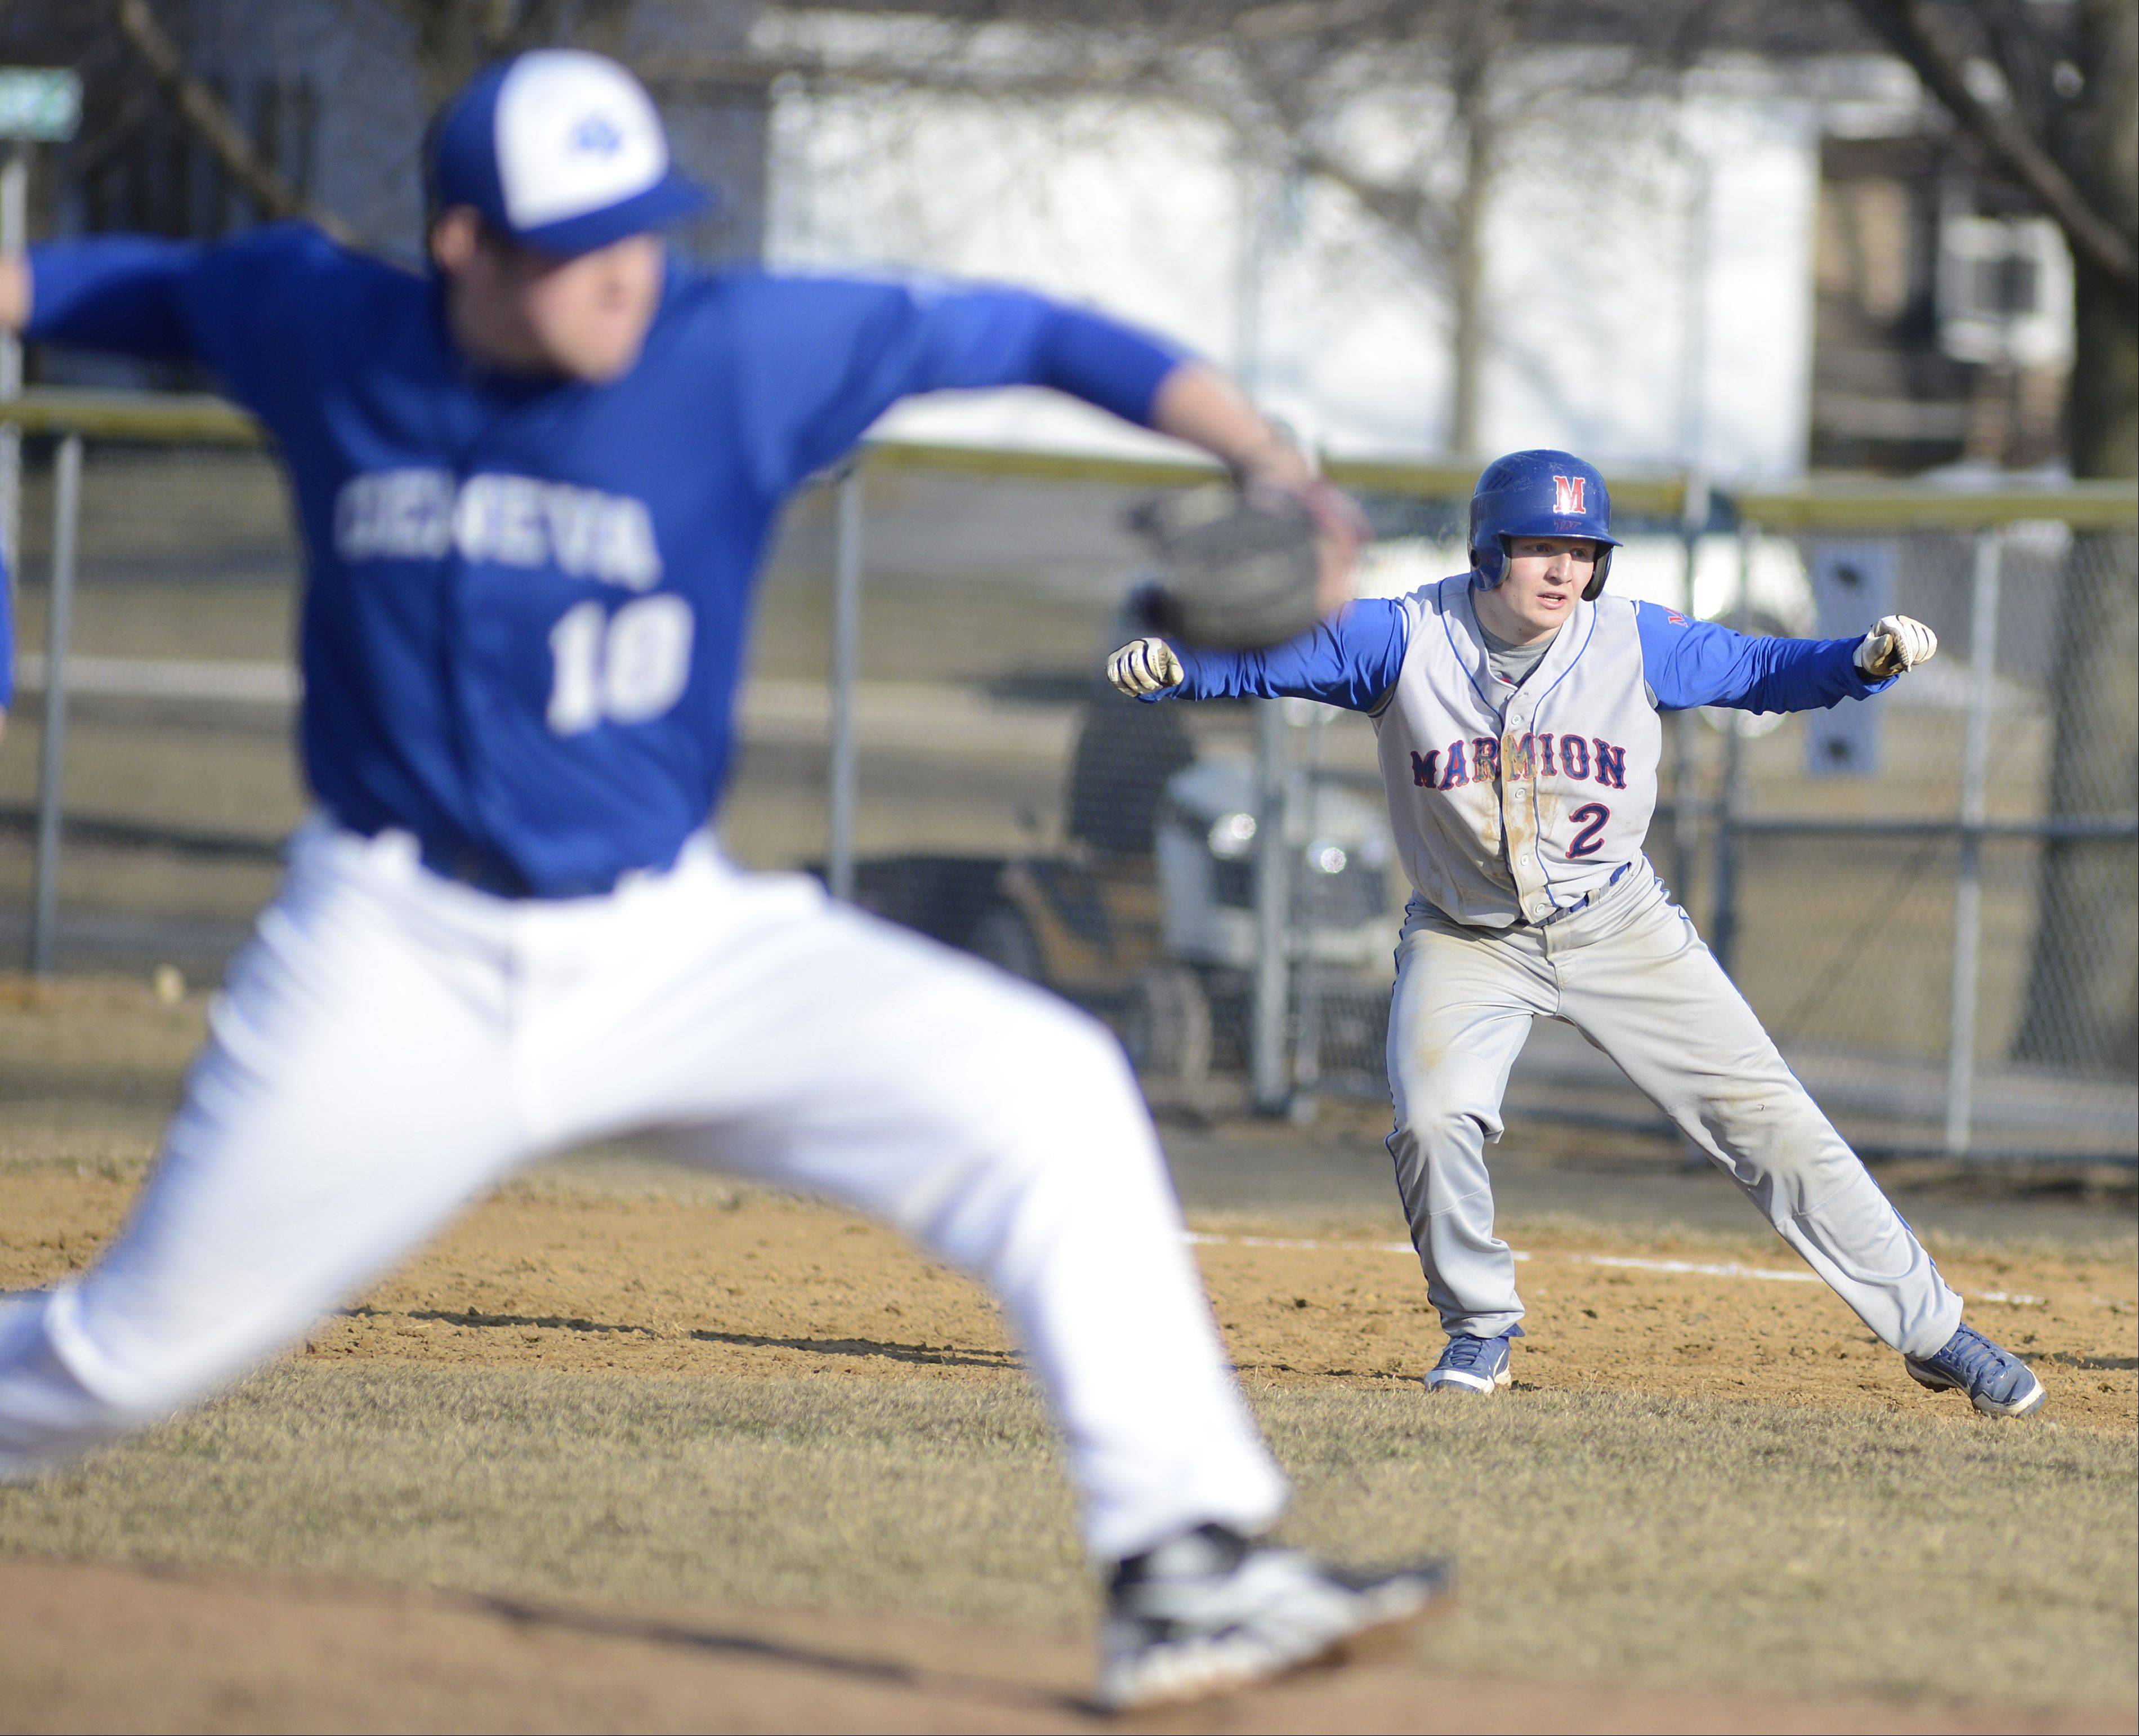 Marmion's RJ Gibson looks to steal second base while Geneva's Tony Landi pitches in the fifth inning on Thursday, March 28.